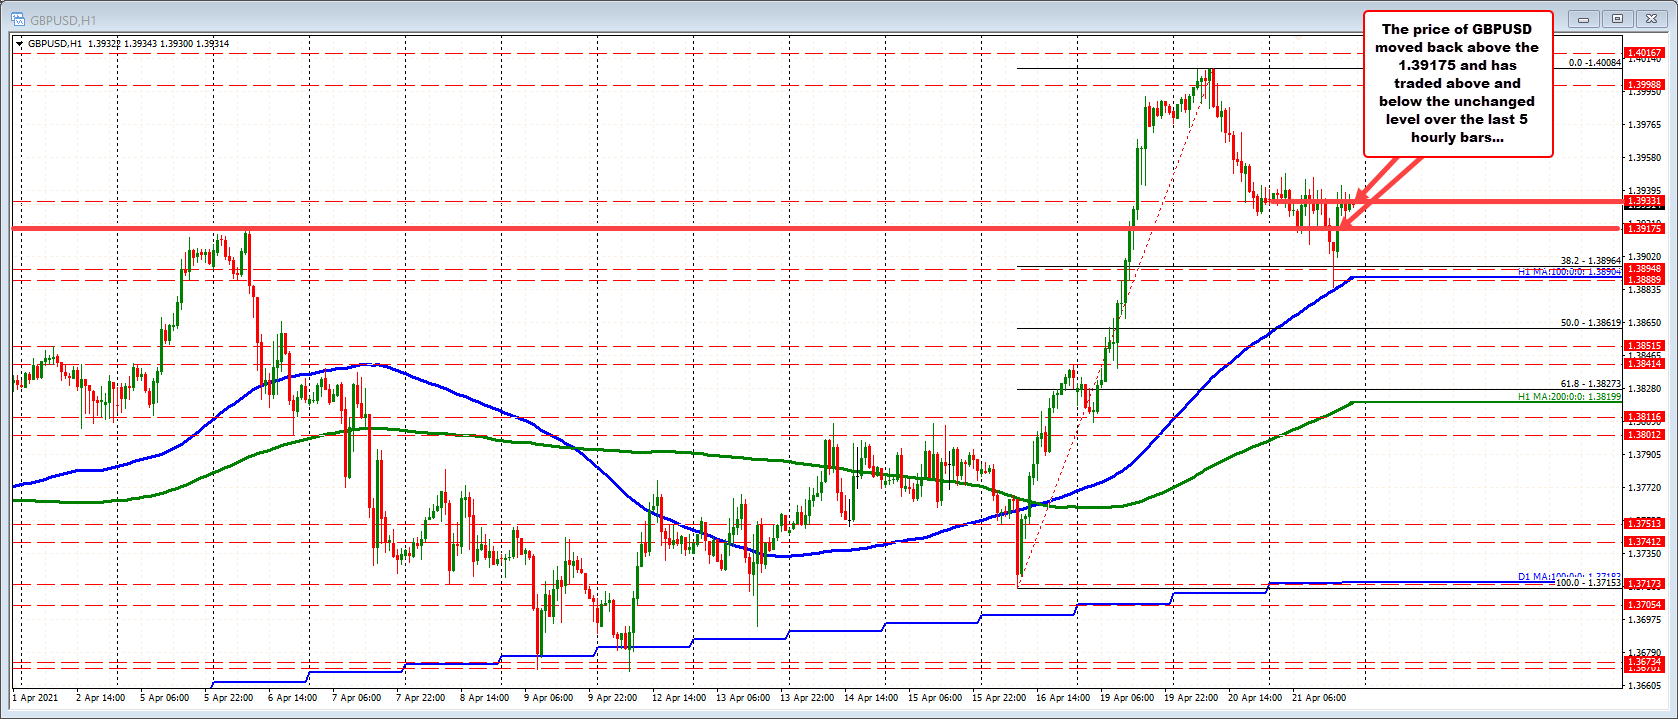 GBPUSD moves back toward unchanged